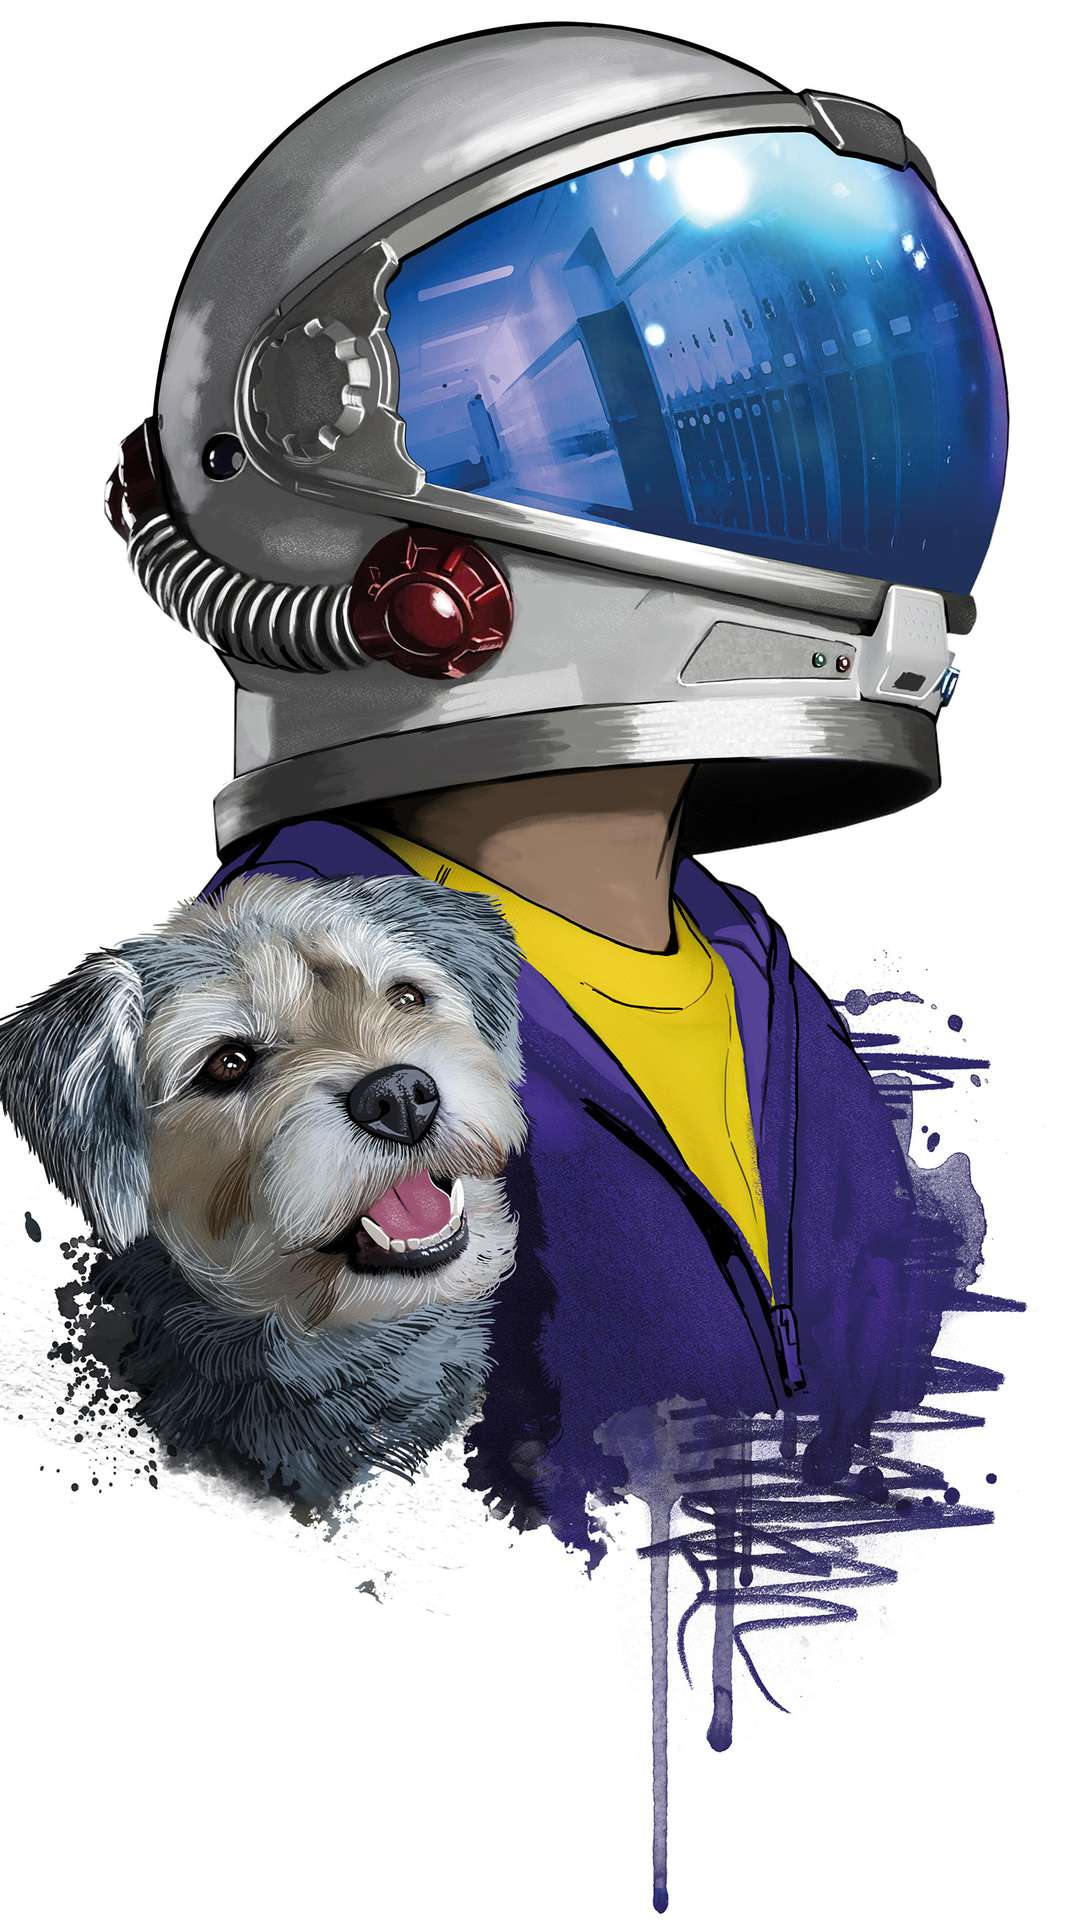 Astronaut with Dog iPhone Wallpaper